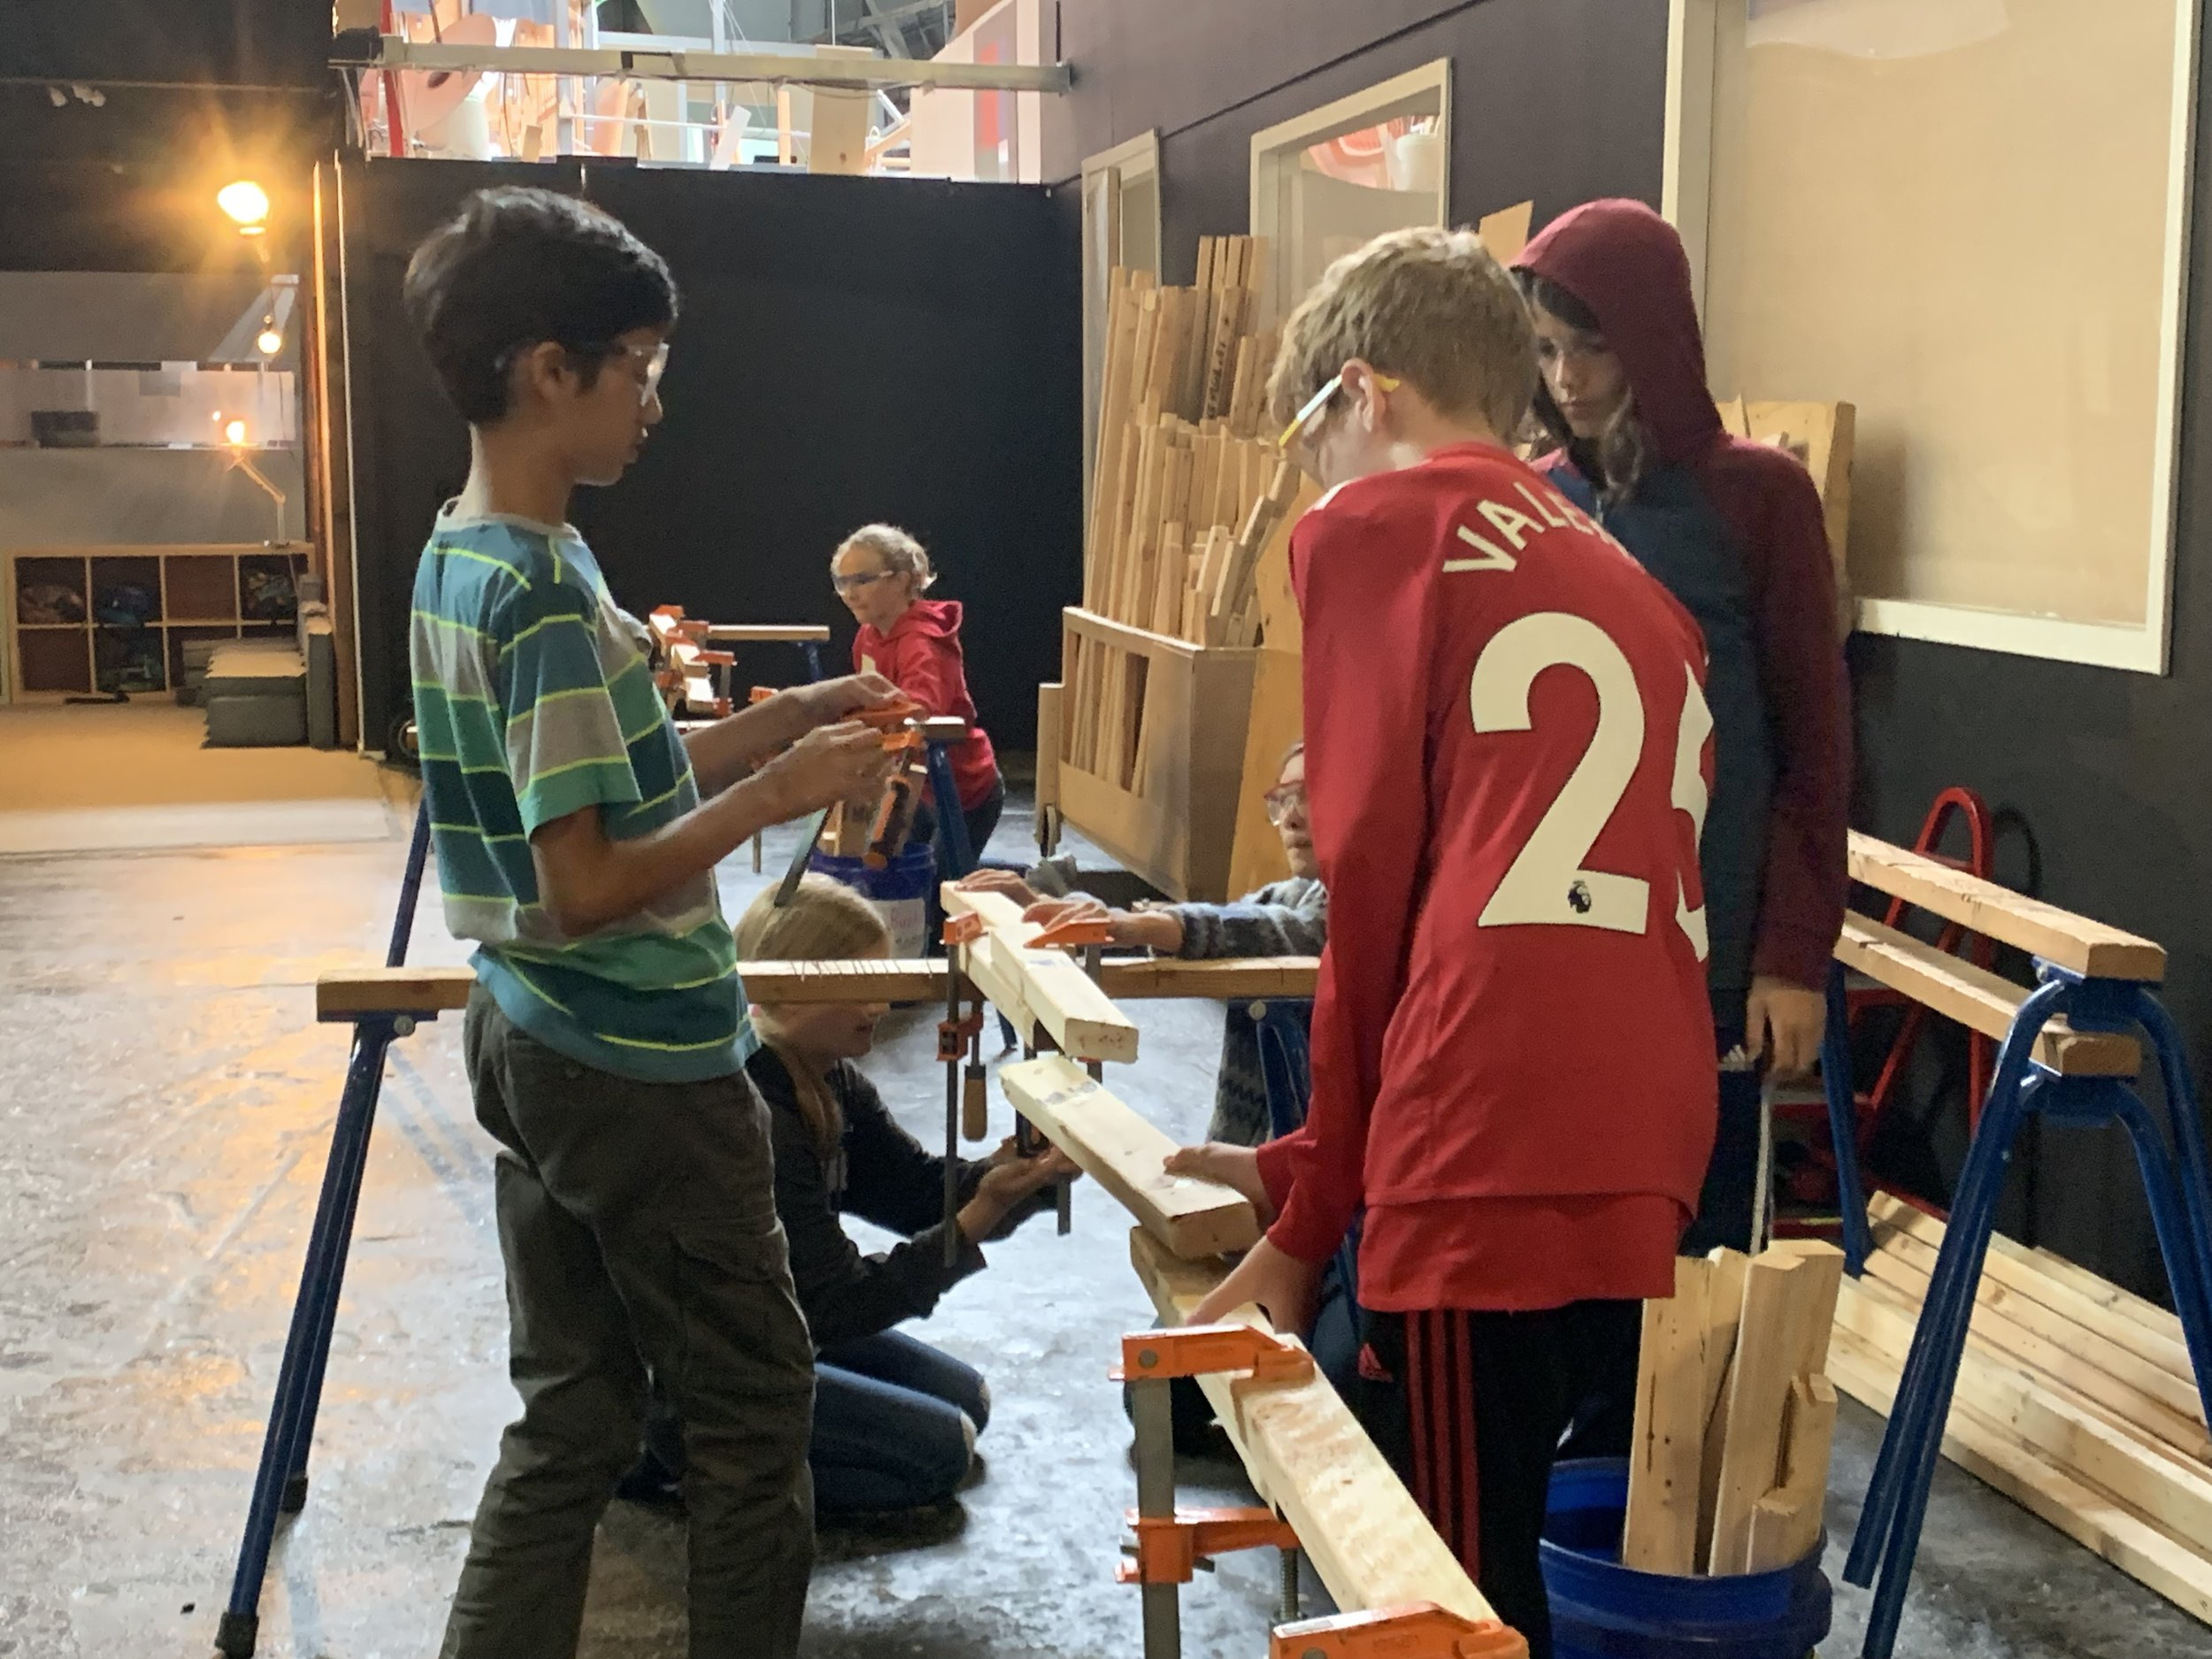 Learning to collaborate and build a bridge out of wood & clamps